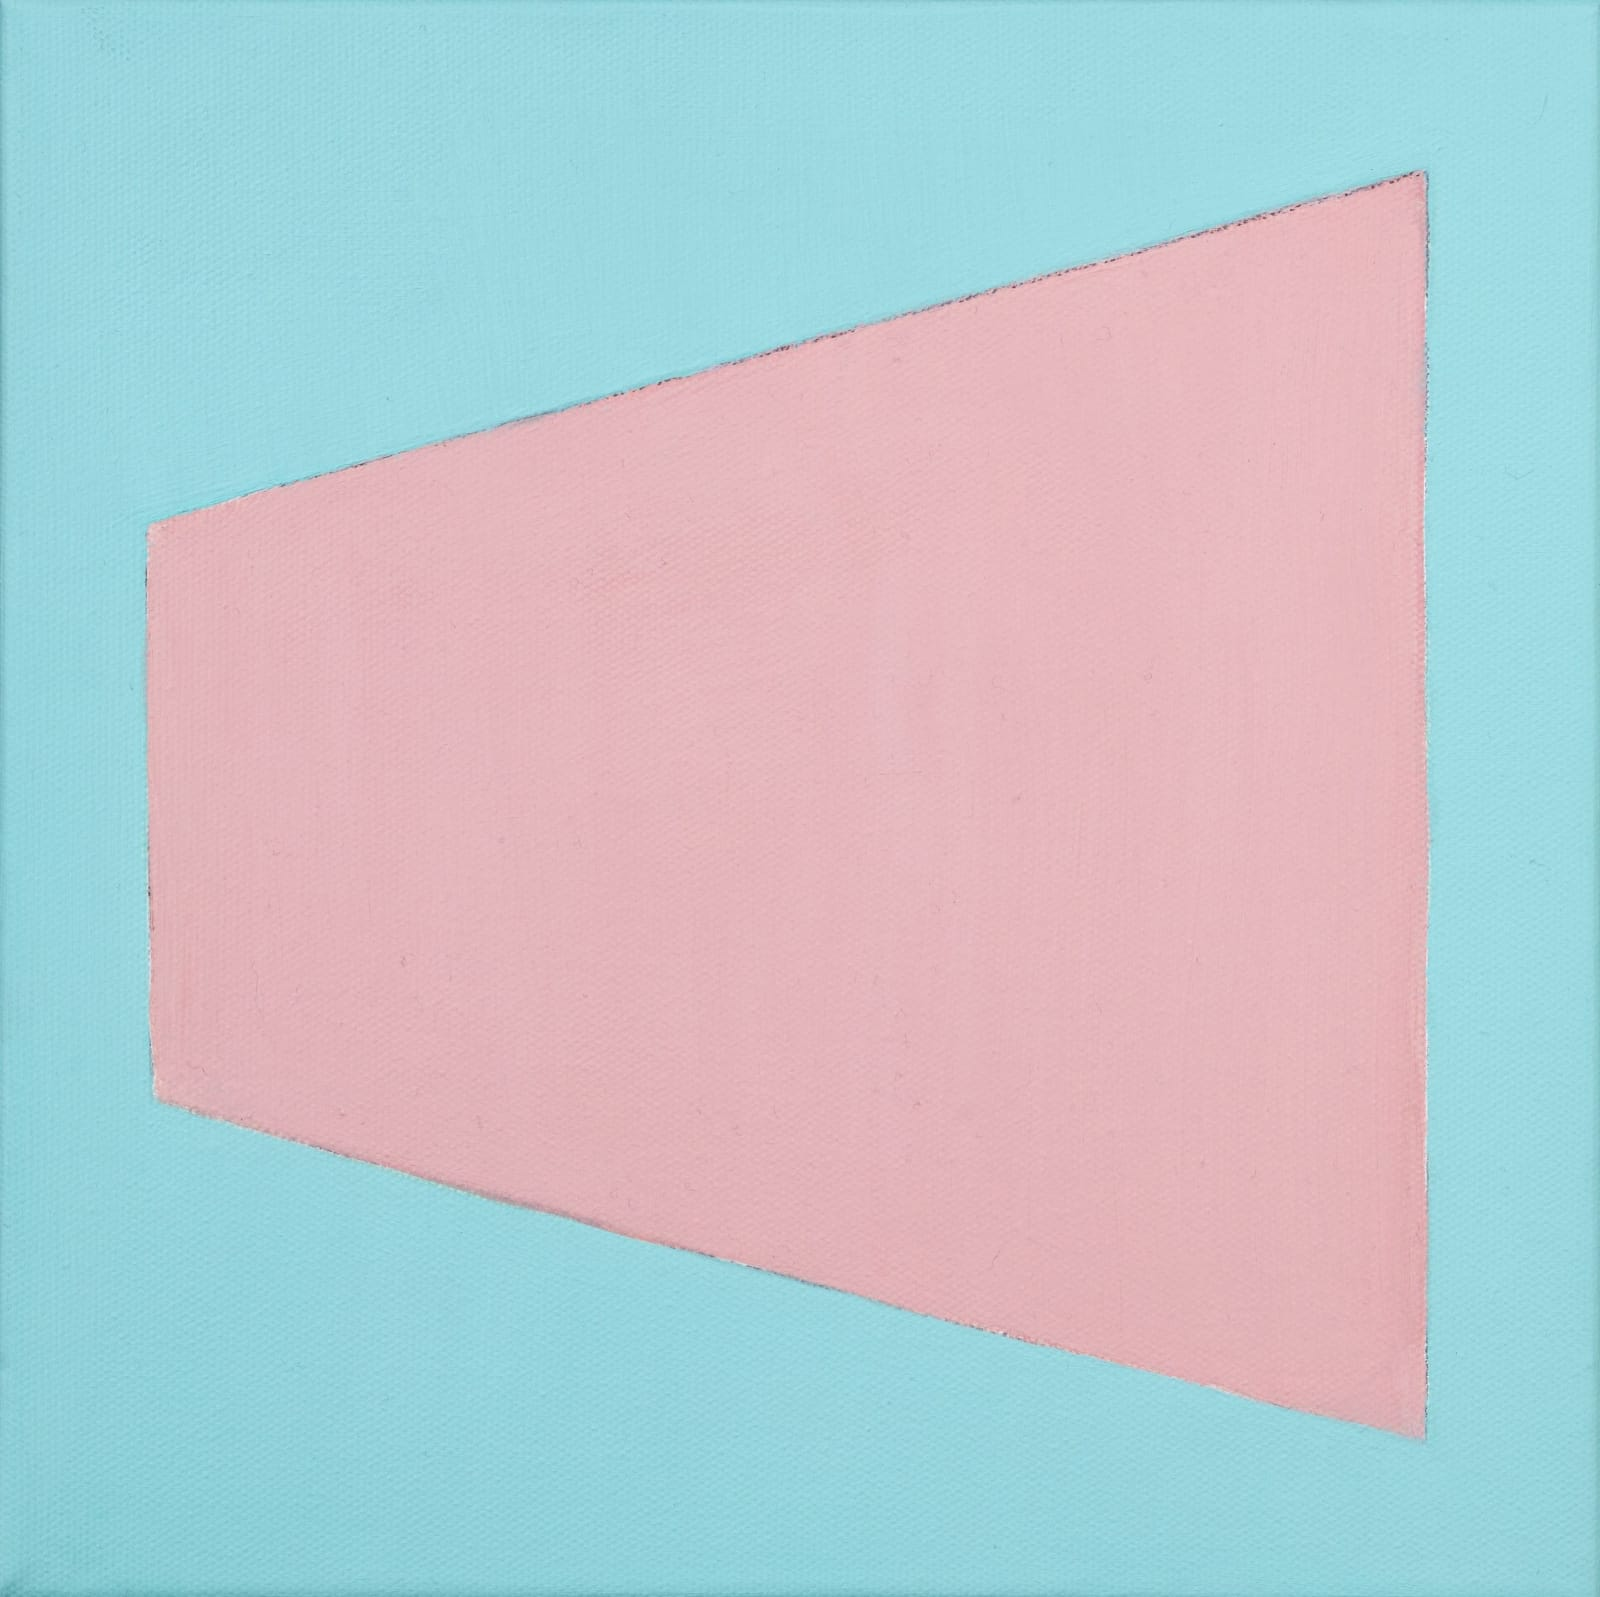 Julie Umerle, Unfolded Polygon II, 2019